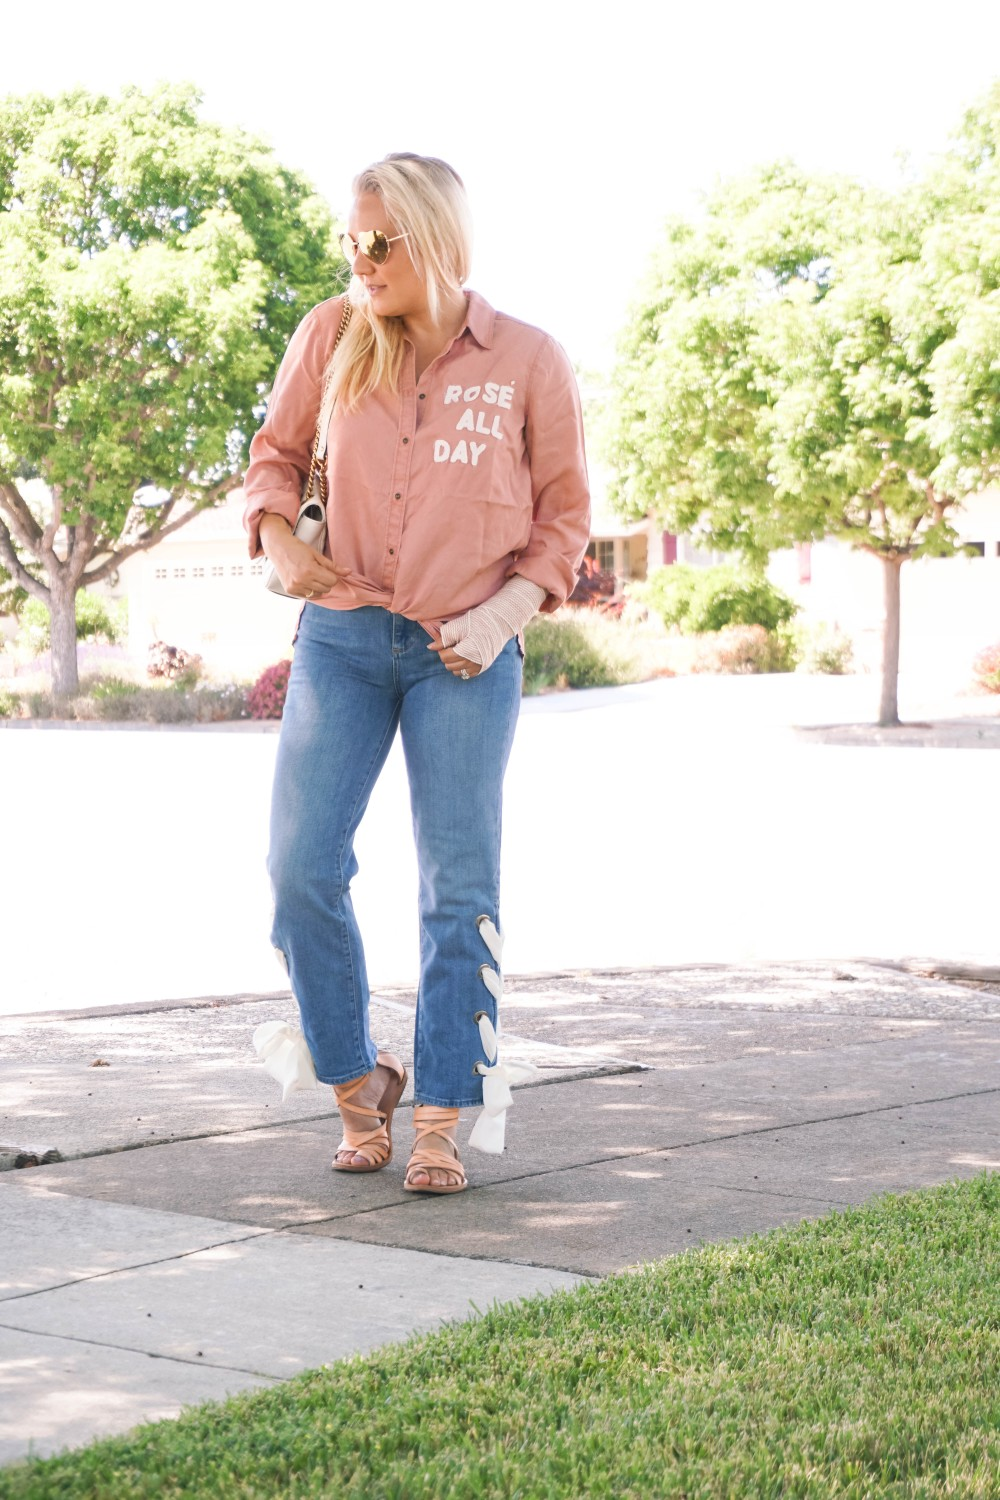 Rosé All Day, Lace Detail Denim, Paige Denim, Outfit Inspiration, Mom Style, Weekend Outfit Inspiration